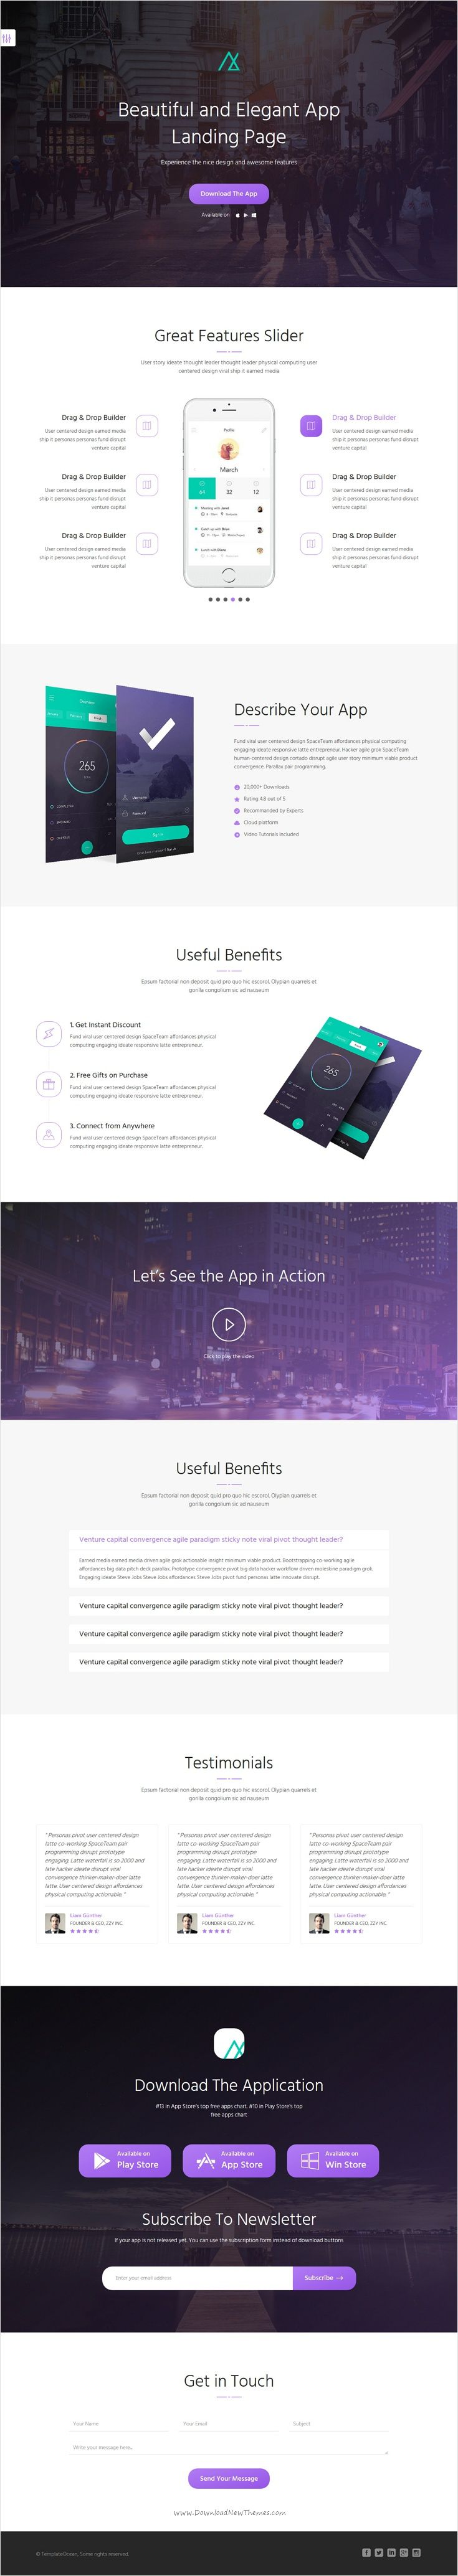 Nemo is a perfect Landing Page #HTML Bootstrap #template #webdesign with 9 ready layouts, 9 color and 5 typography variations with drag and drop builder for stunning lead generating website download now➩ https://wrapbootstrap.com/theme/nemo-bootstrap-landing-page-megapack-WB0N4024M?ref=datasata